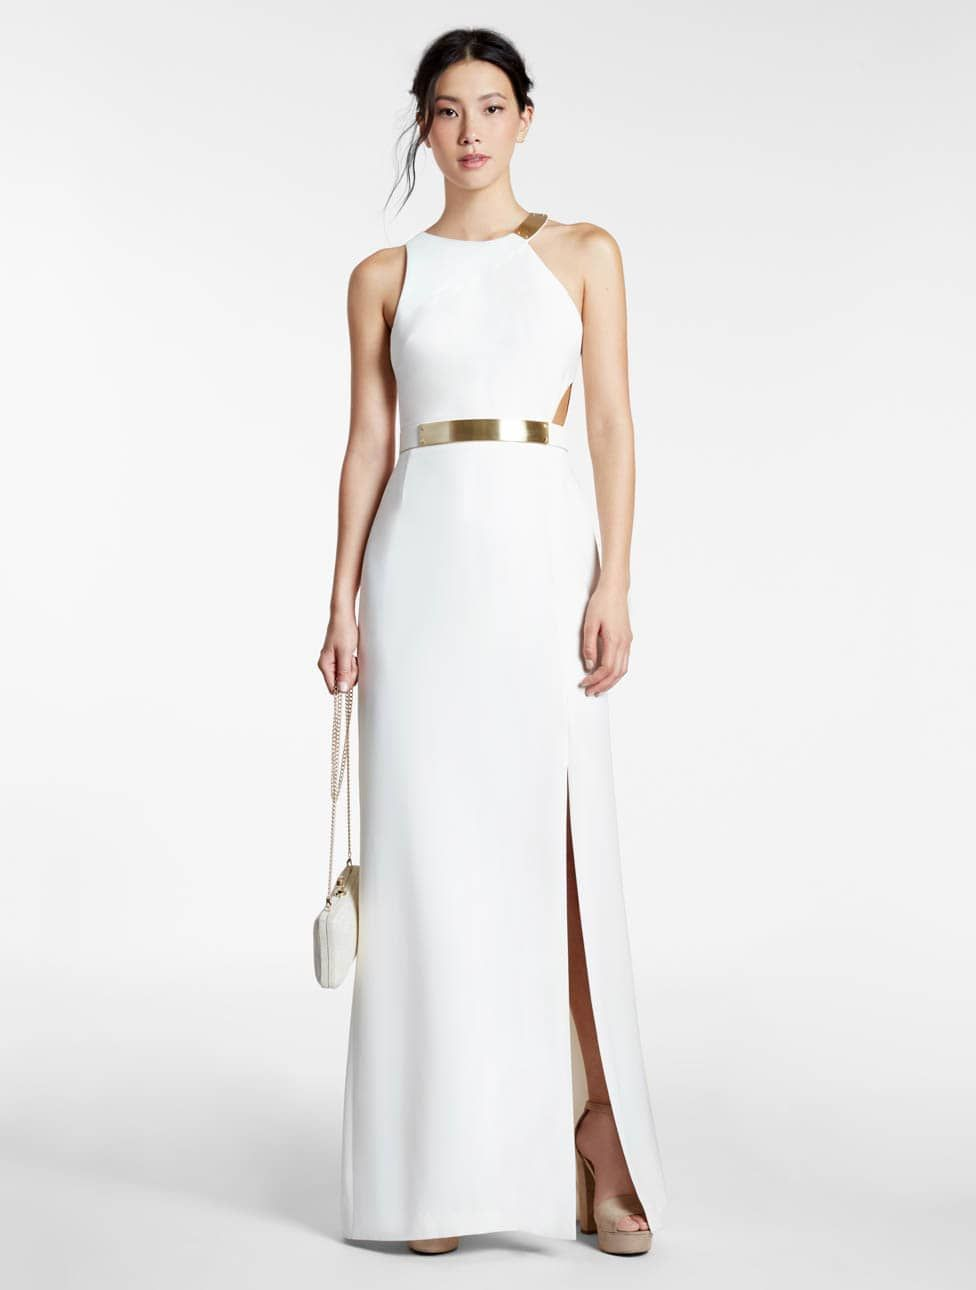 Metal Plate Crepe Gown | Crêpes, Halston heritage and Gowns